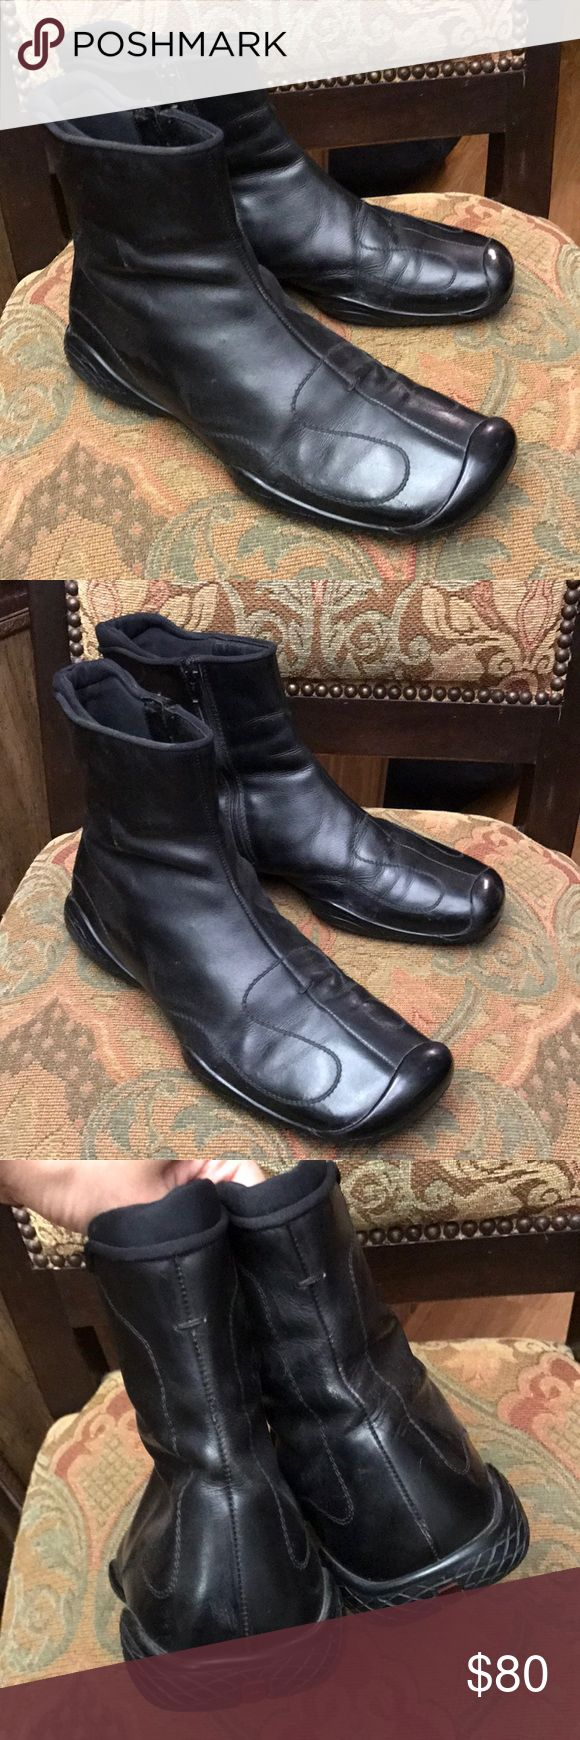 Prada mens ankle boots black 8.5 Prada boots in preowned good condition Prada Shoes Boots